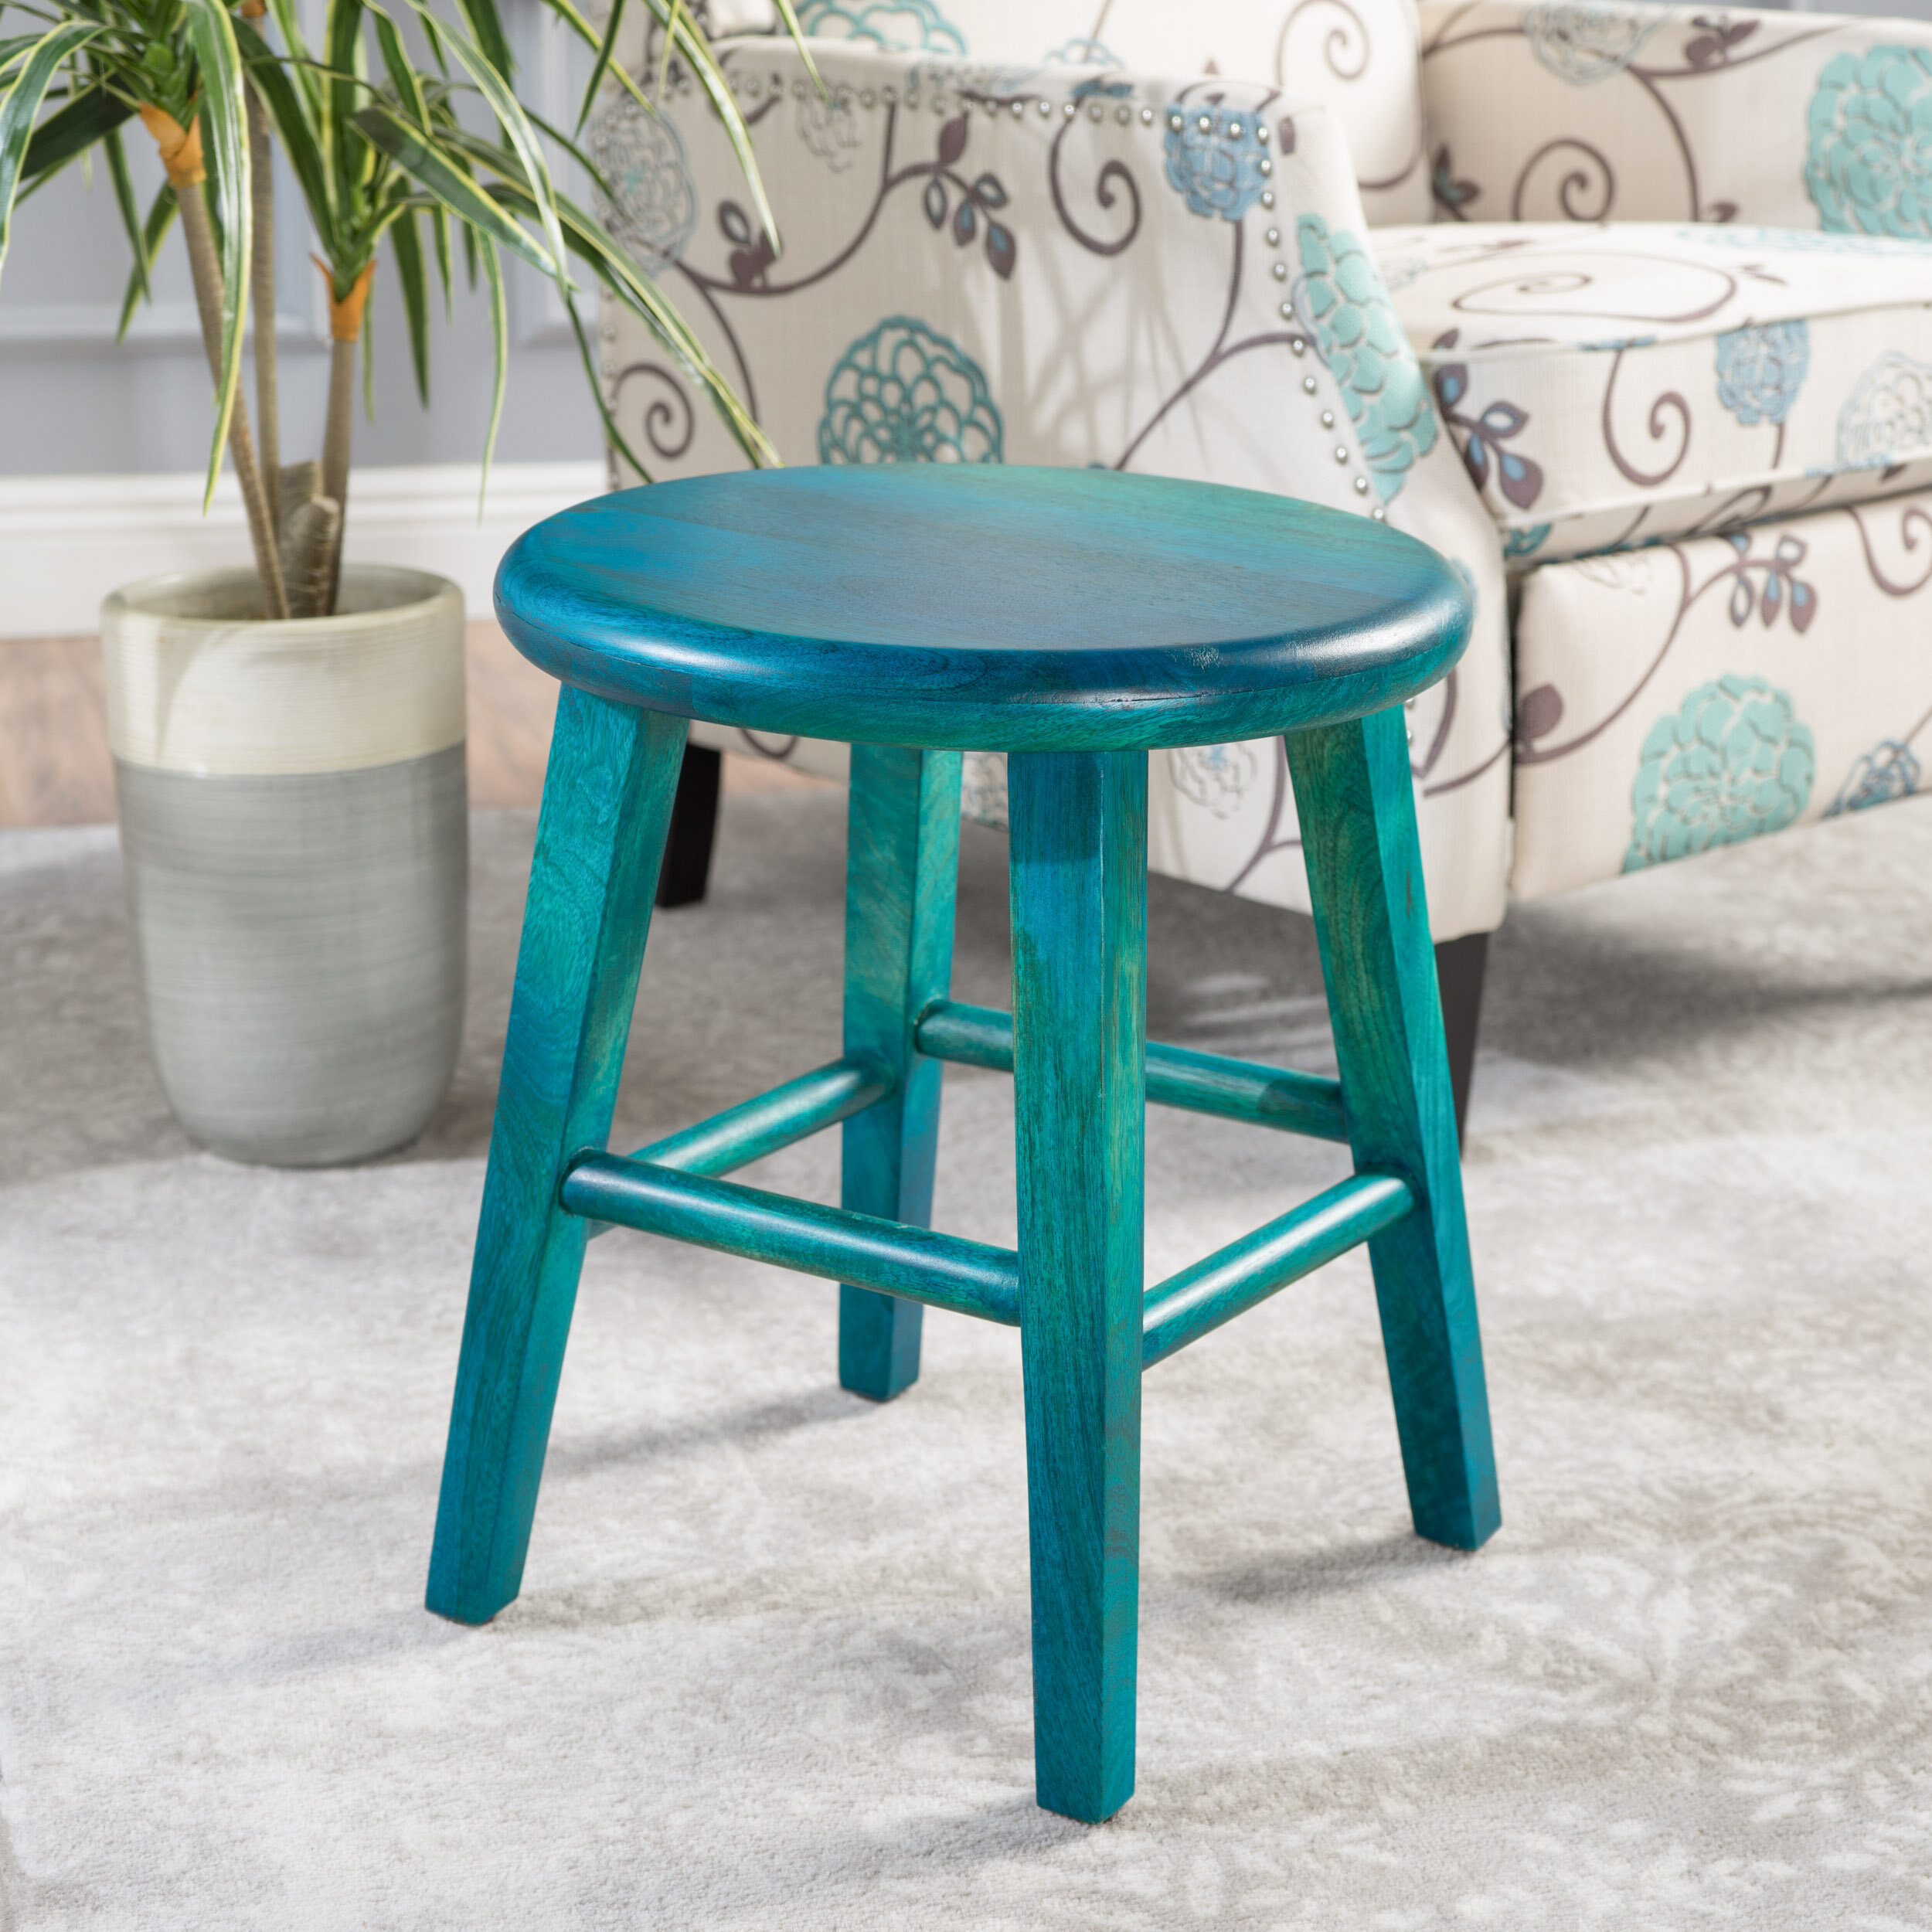 moco owl loco stool submissions dsc collection rolling